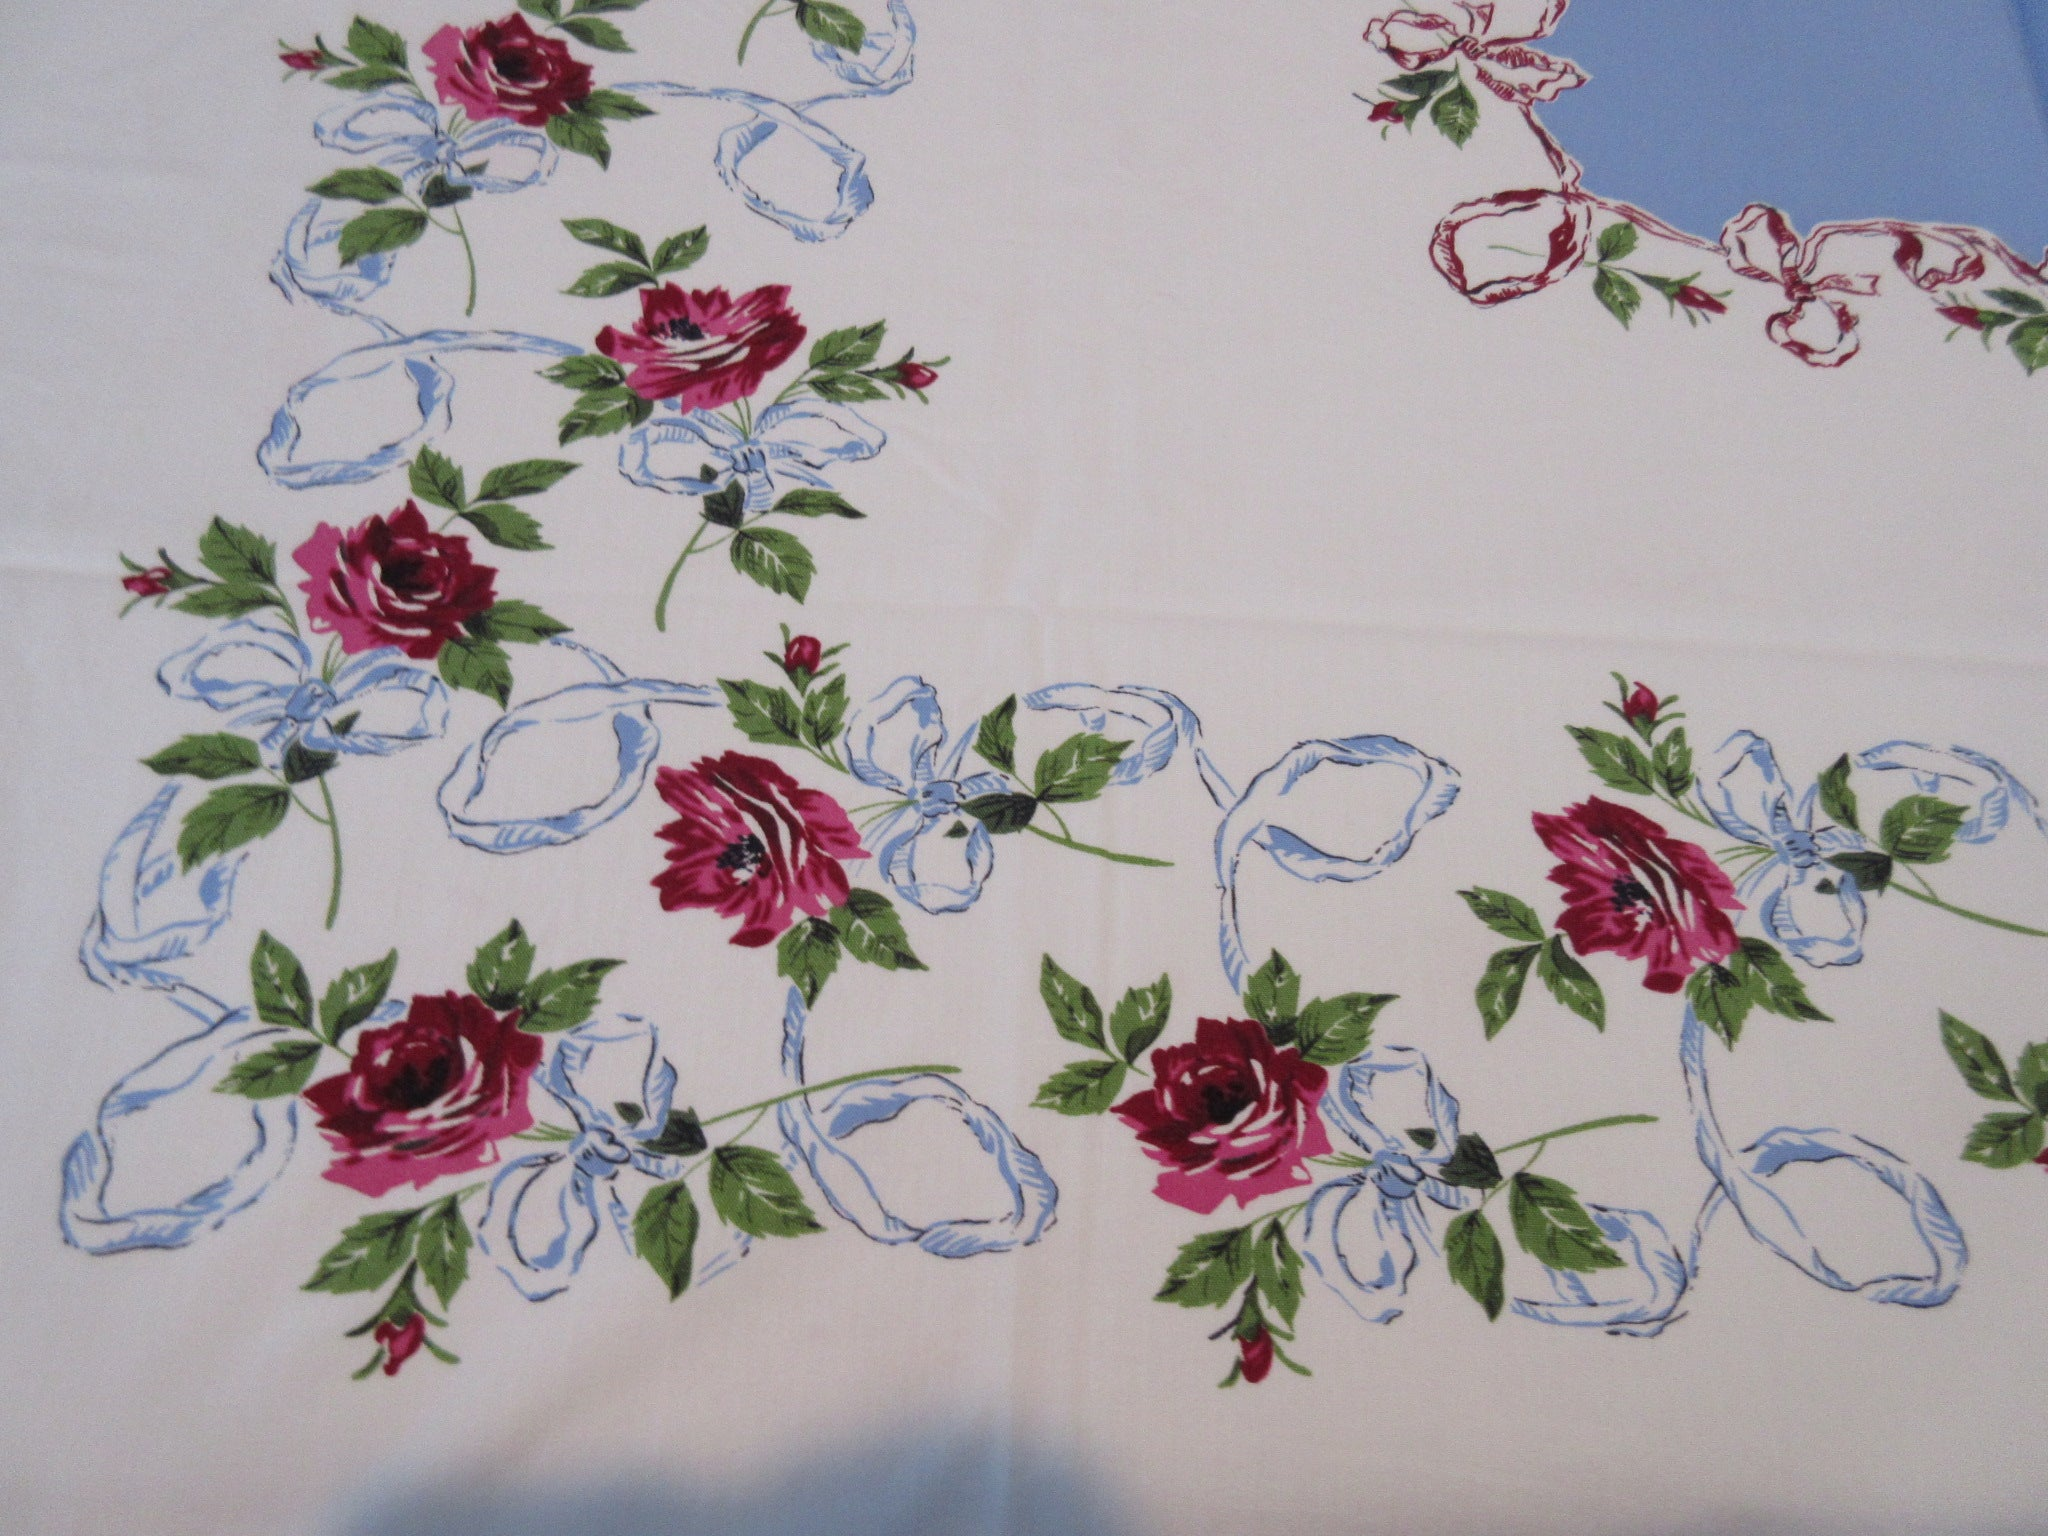 Magenta Roses Blue Ribbons on Blue Floral Vintage Printed Tablecloth (52 X 48)